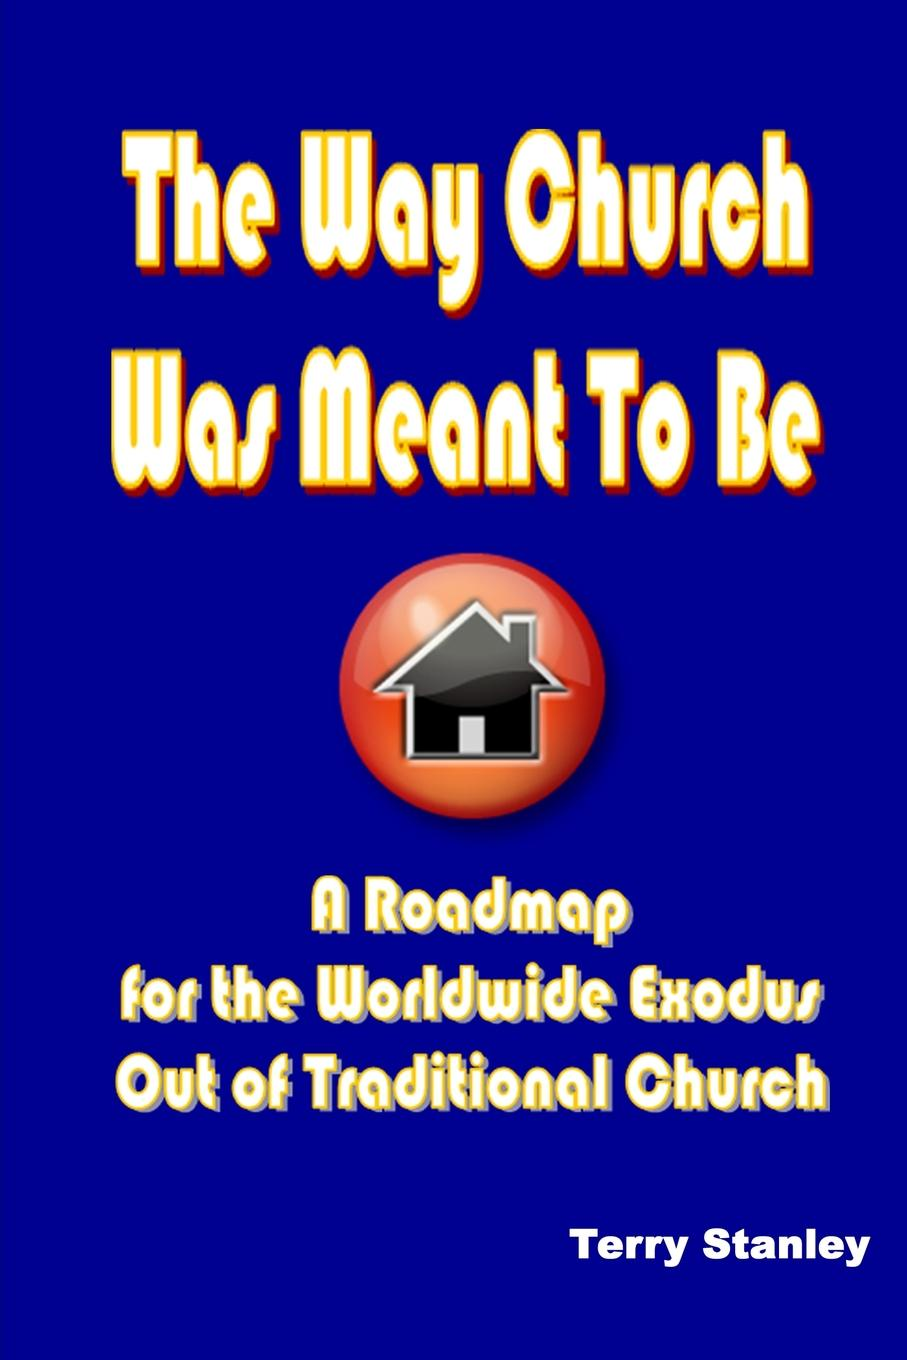 Terry Stanley The Way Church Was Meant To Be A Roadmap for the Worldwide Exodus Out of Traditional Church steven goldberg h billions of drops in millions of buckets why philanthropy doesn t advance social progress isbn 9780470488171